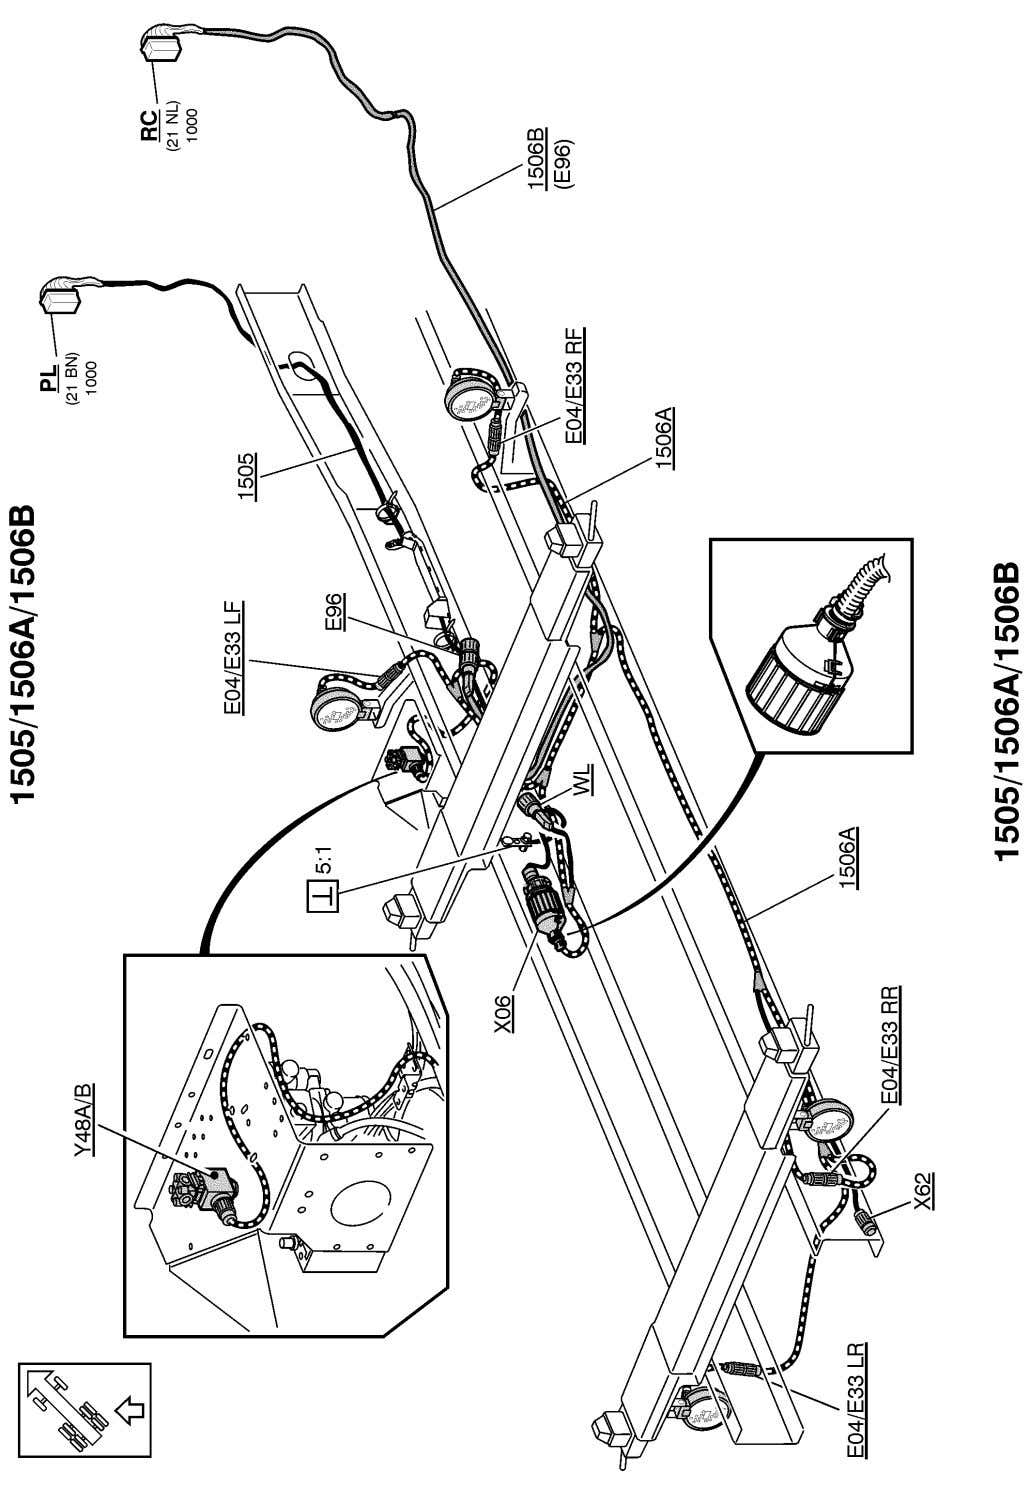 T3068086 Wiring diagram Page 219 (298)